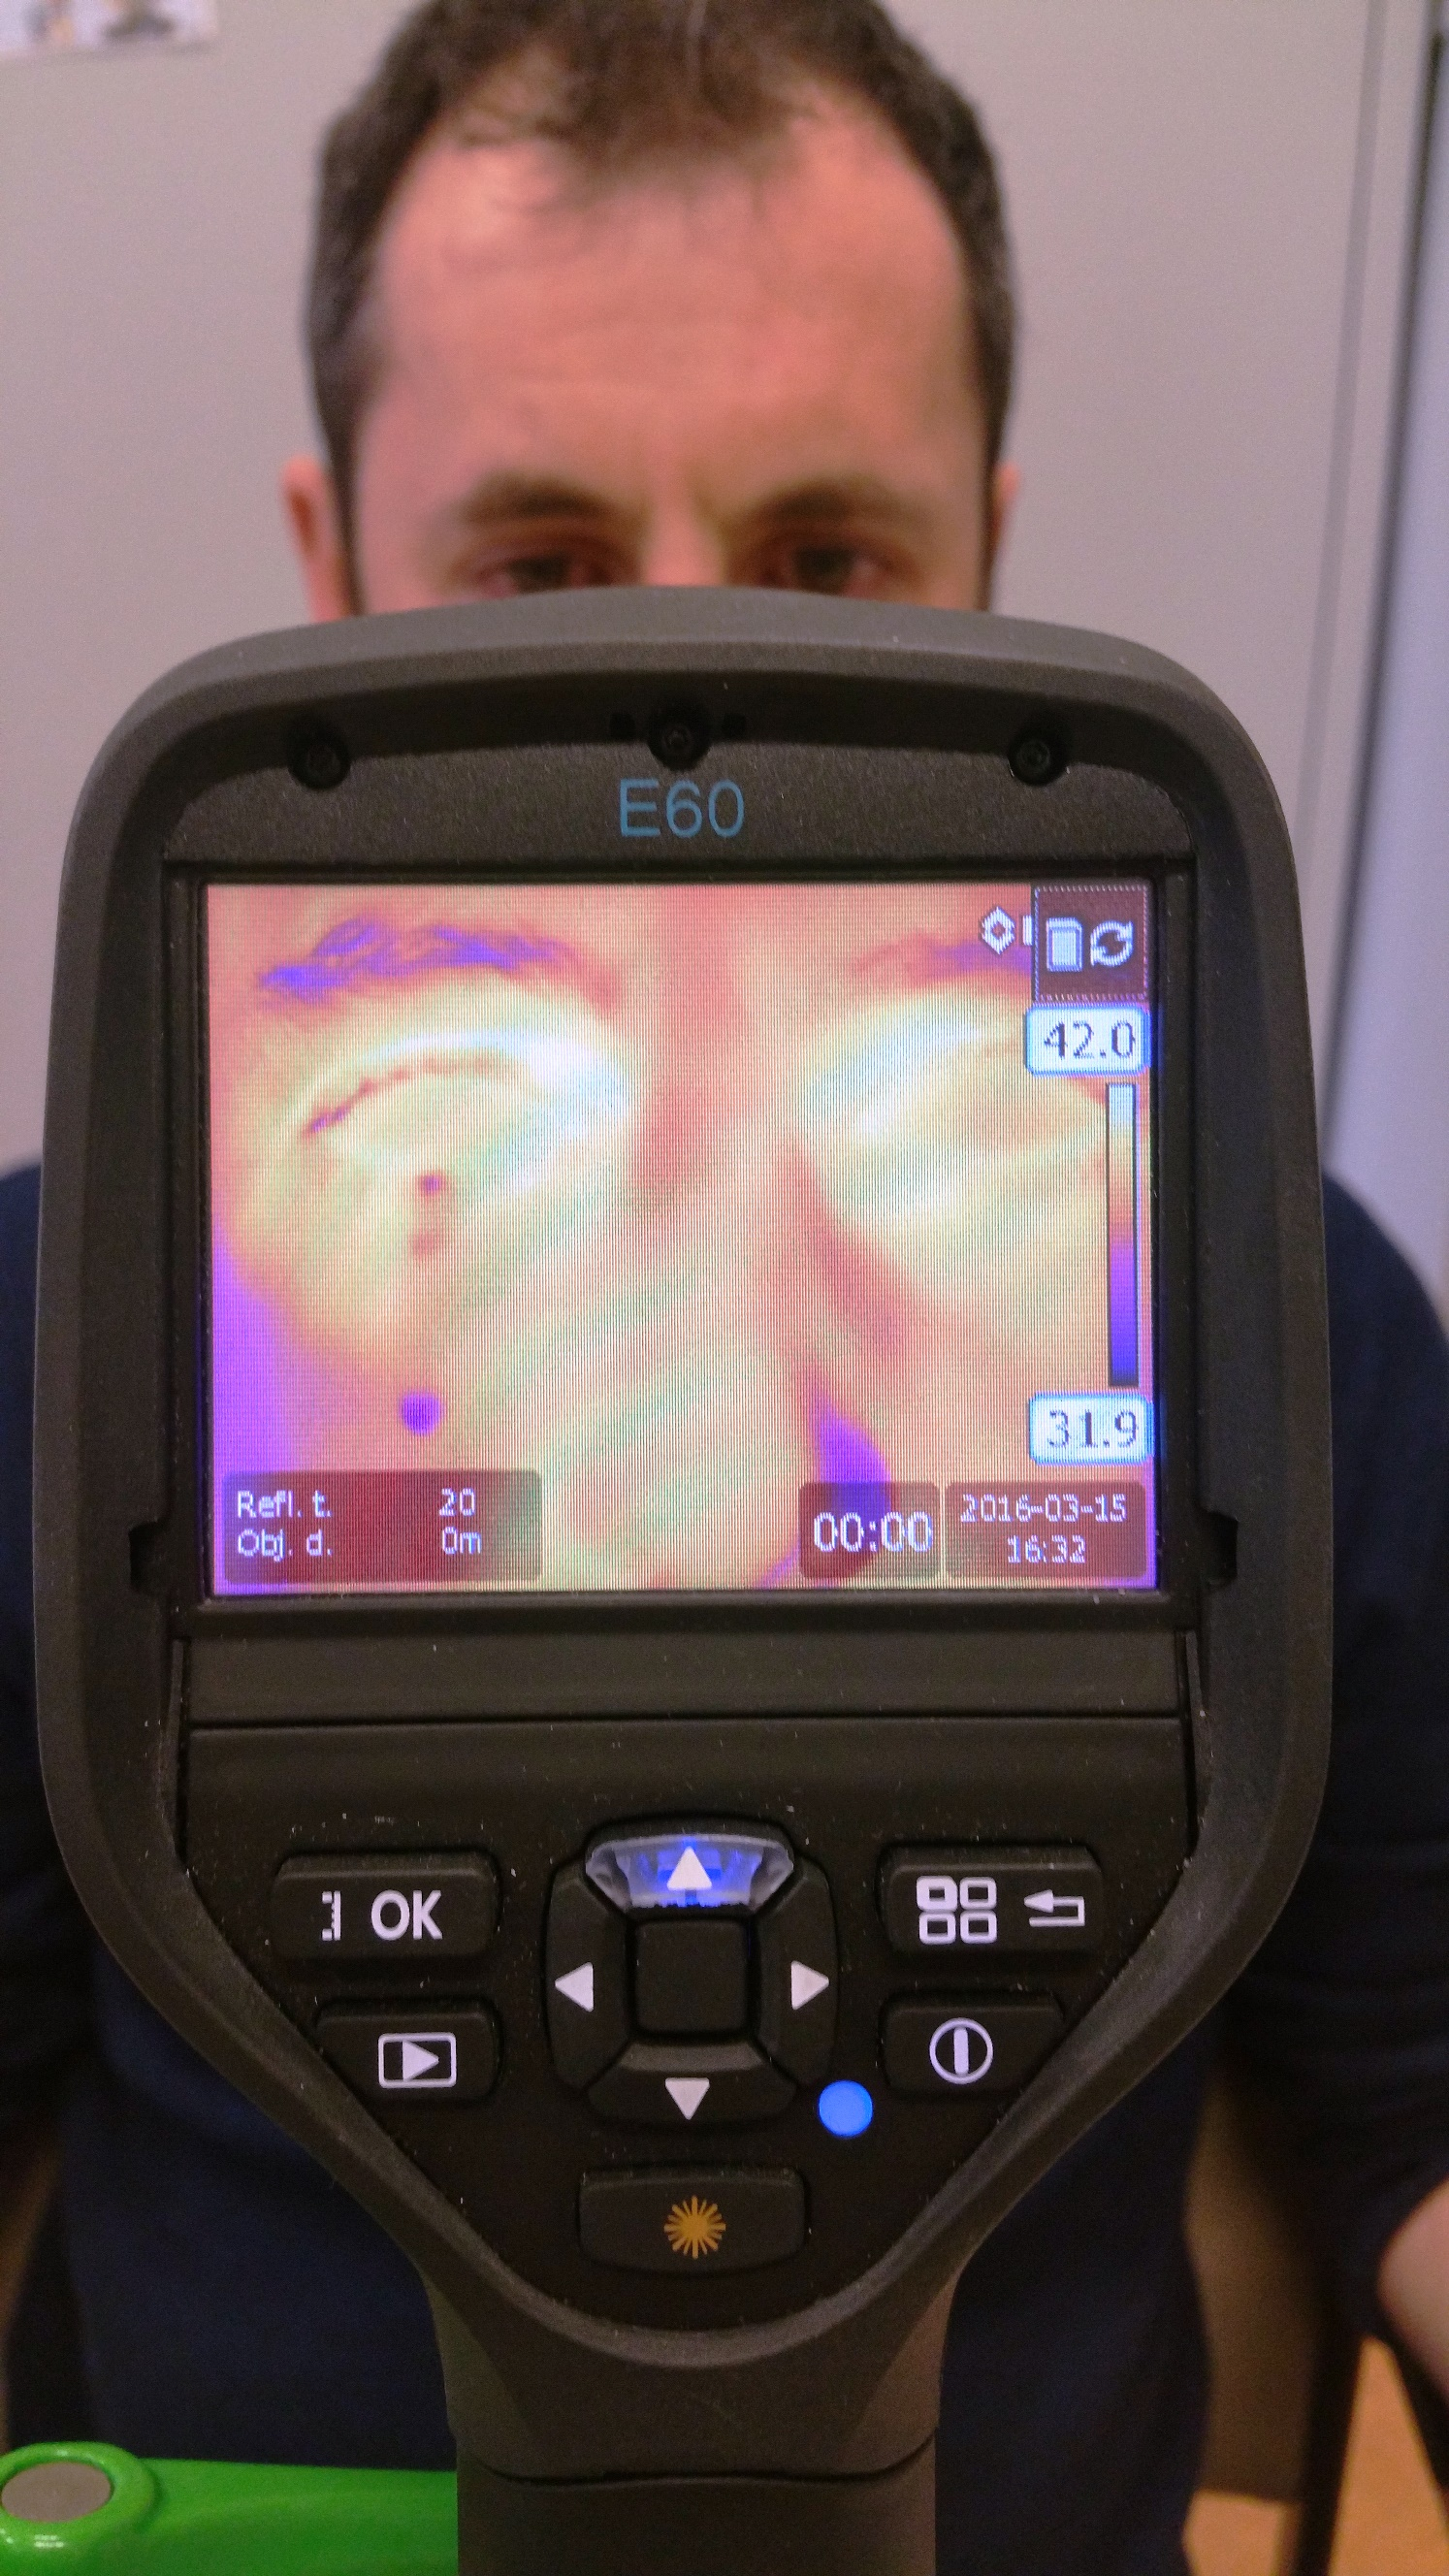 Asmir with induced tear as filmed with Flir thermal imaging camera